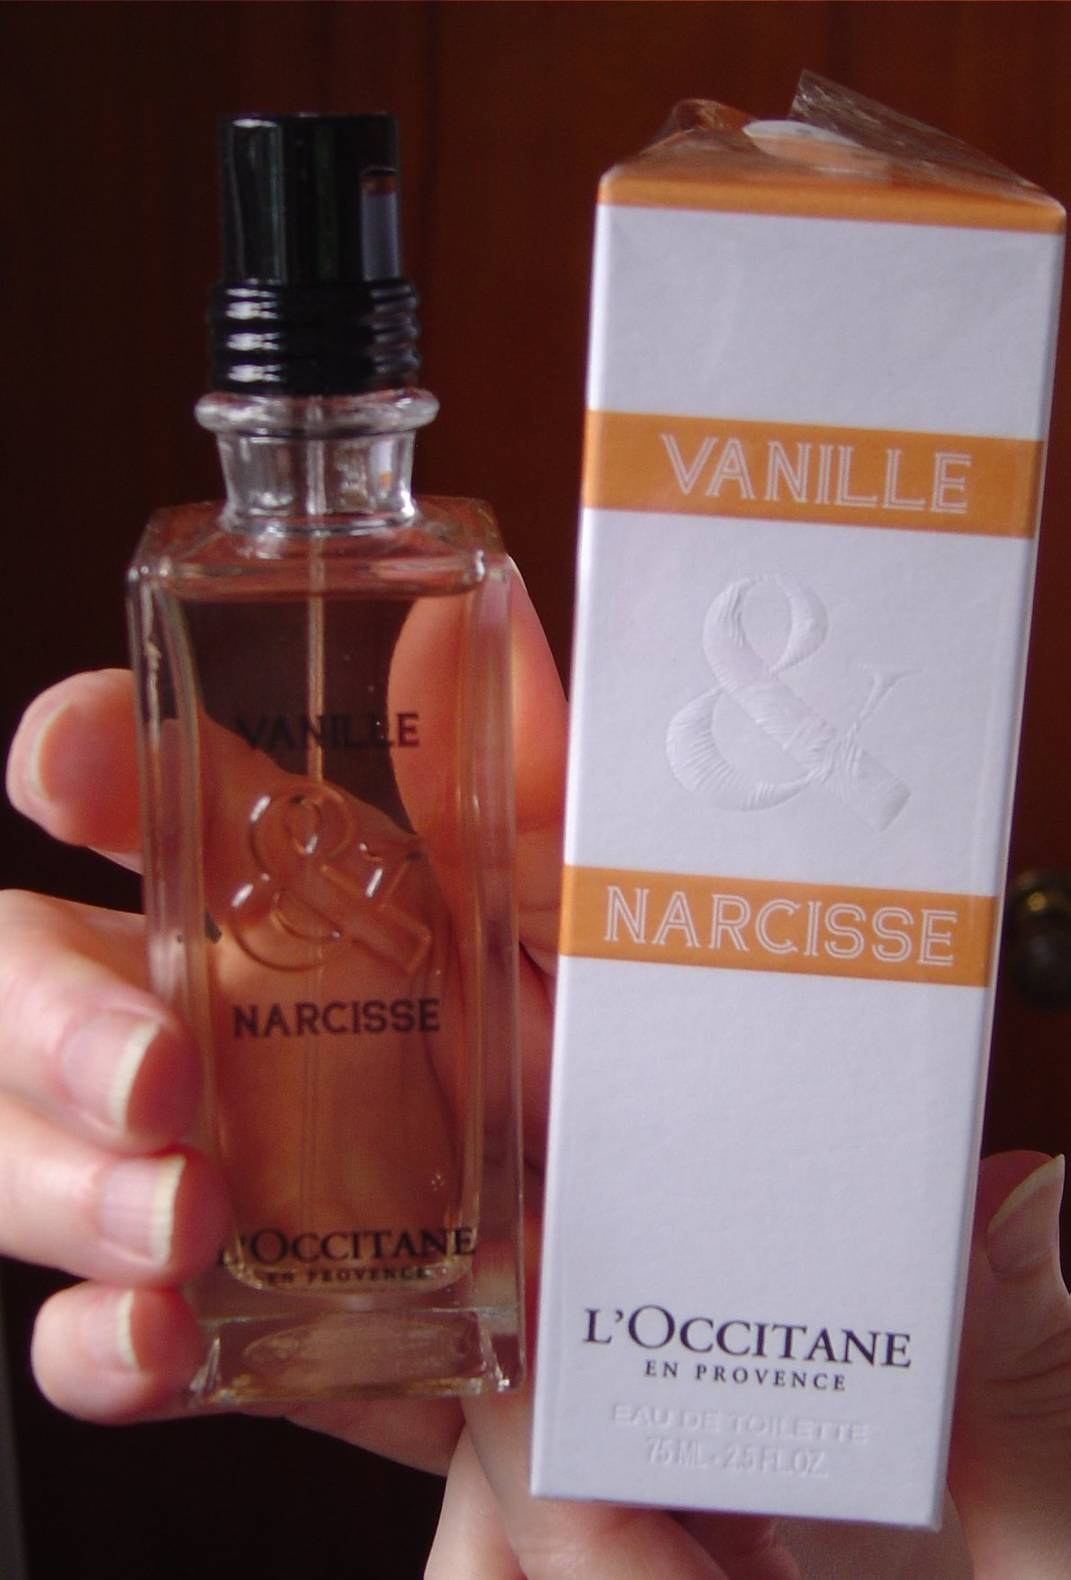 L'Occitane en Provence La Collection de Grasse Vanille & Narcisse Eau de Toilette